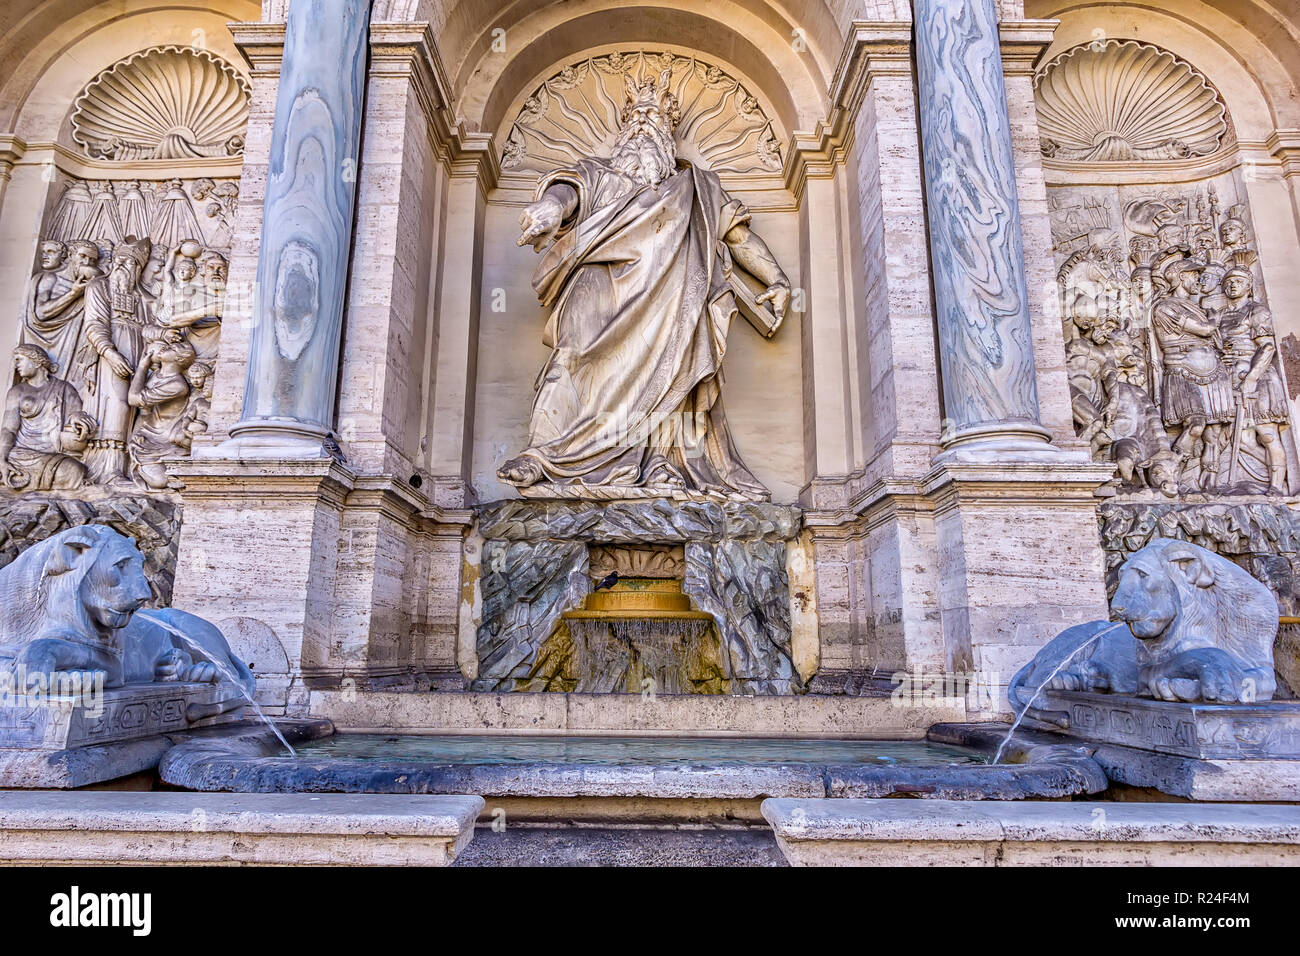 Rome, Italy - June 11, 2017; Rome, Italy, The Fontana dell'Acqua Felice, also called the Fountain of Moses (happy water fountain). Moses is depicted a - Stock Image